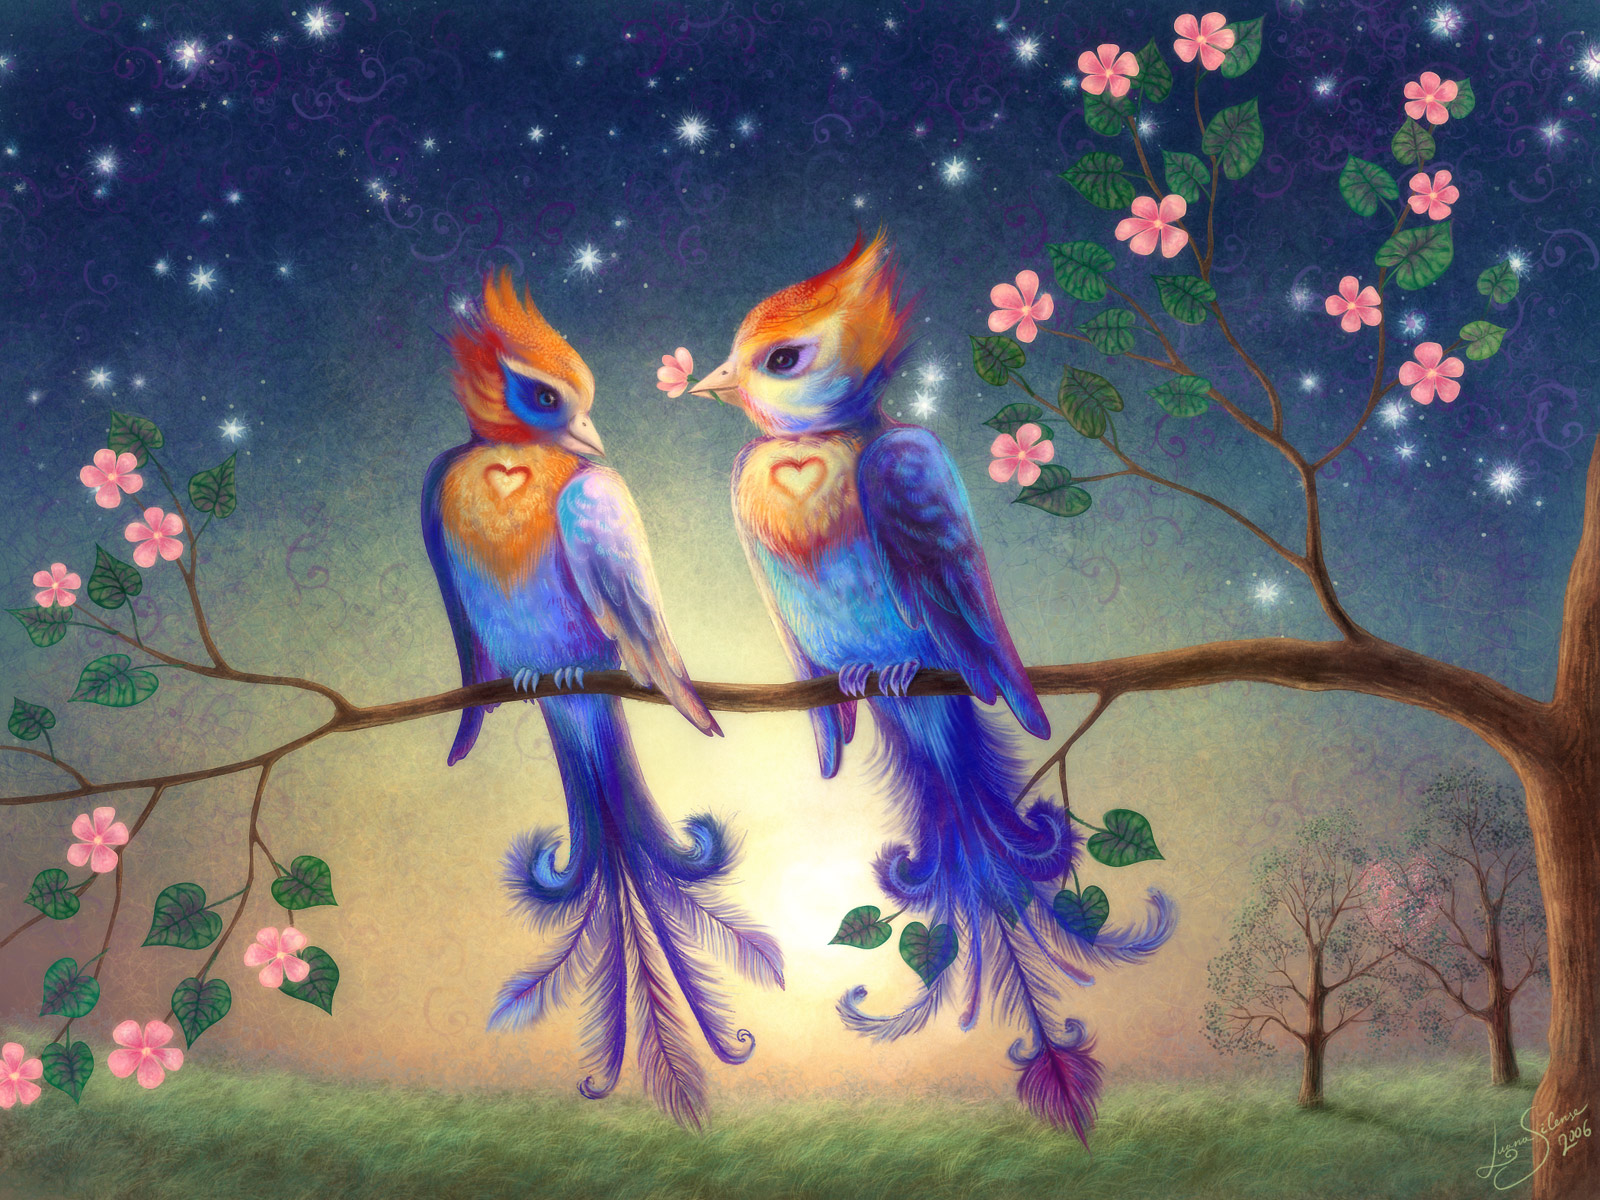 Love Birds Wallpaper Images : Beautiful love birds wallpapers Funny Animal